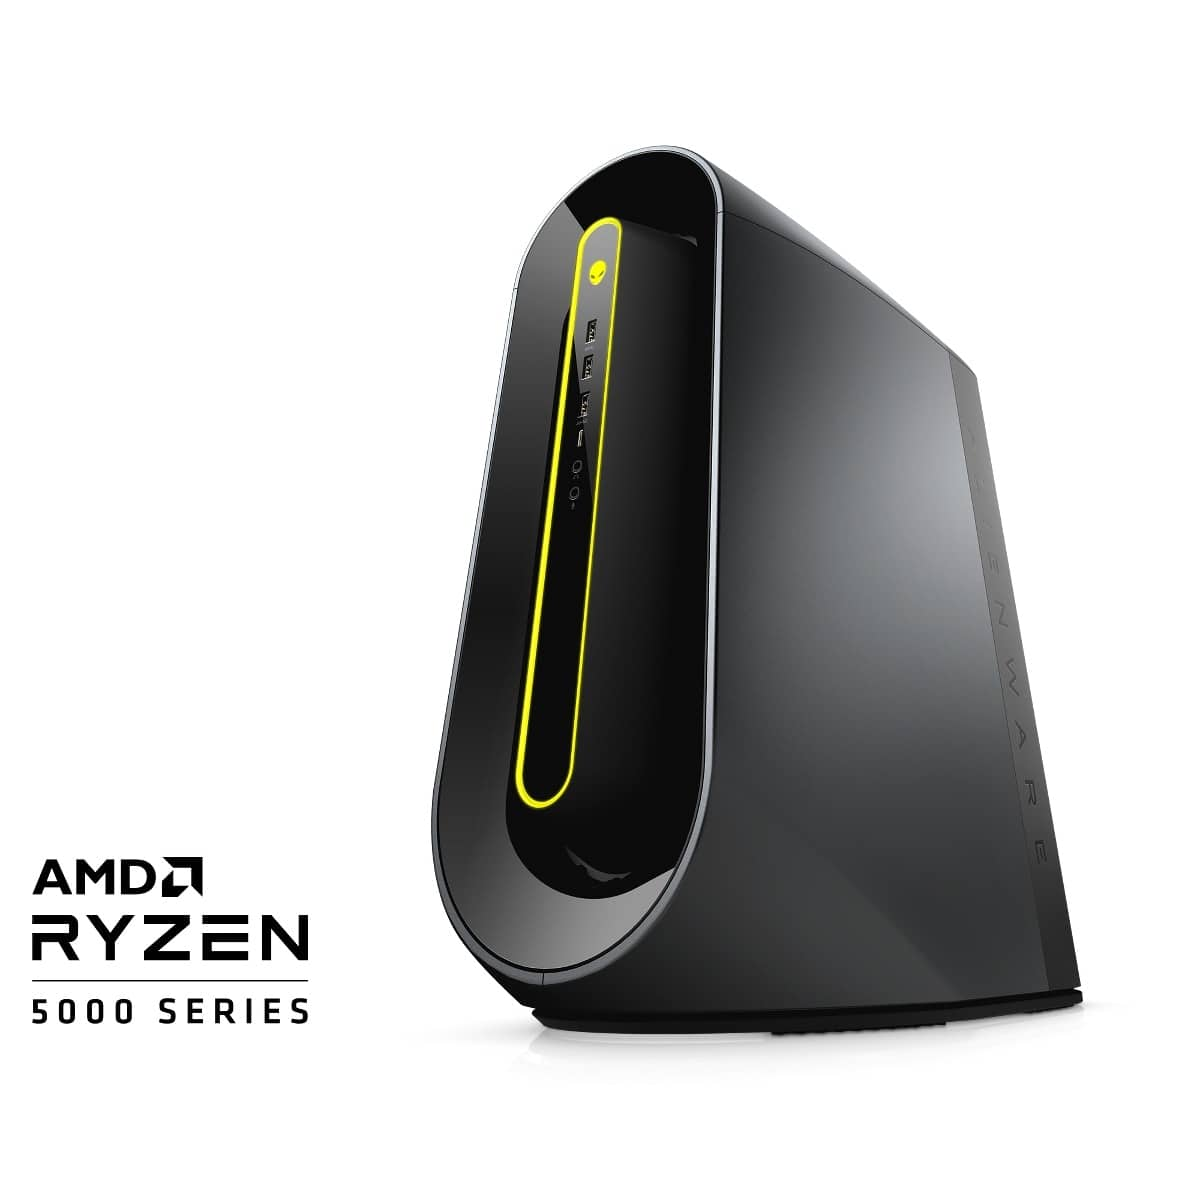 Alienware Aurora R10, RTX 3080, 16GB, 5600X, 512GB M.2 SSD from Dell $2,053.19 plus tax.  Or $1918 with only 8GB ram and a 1 TB HDD.